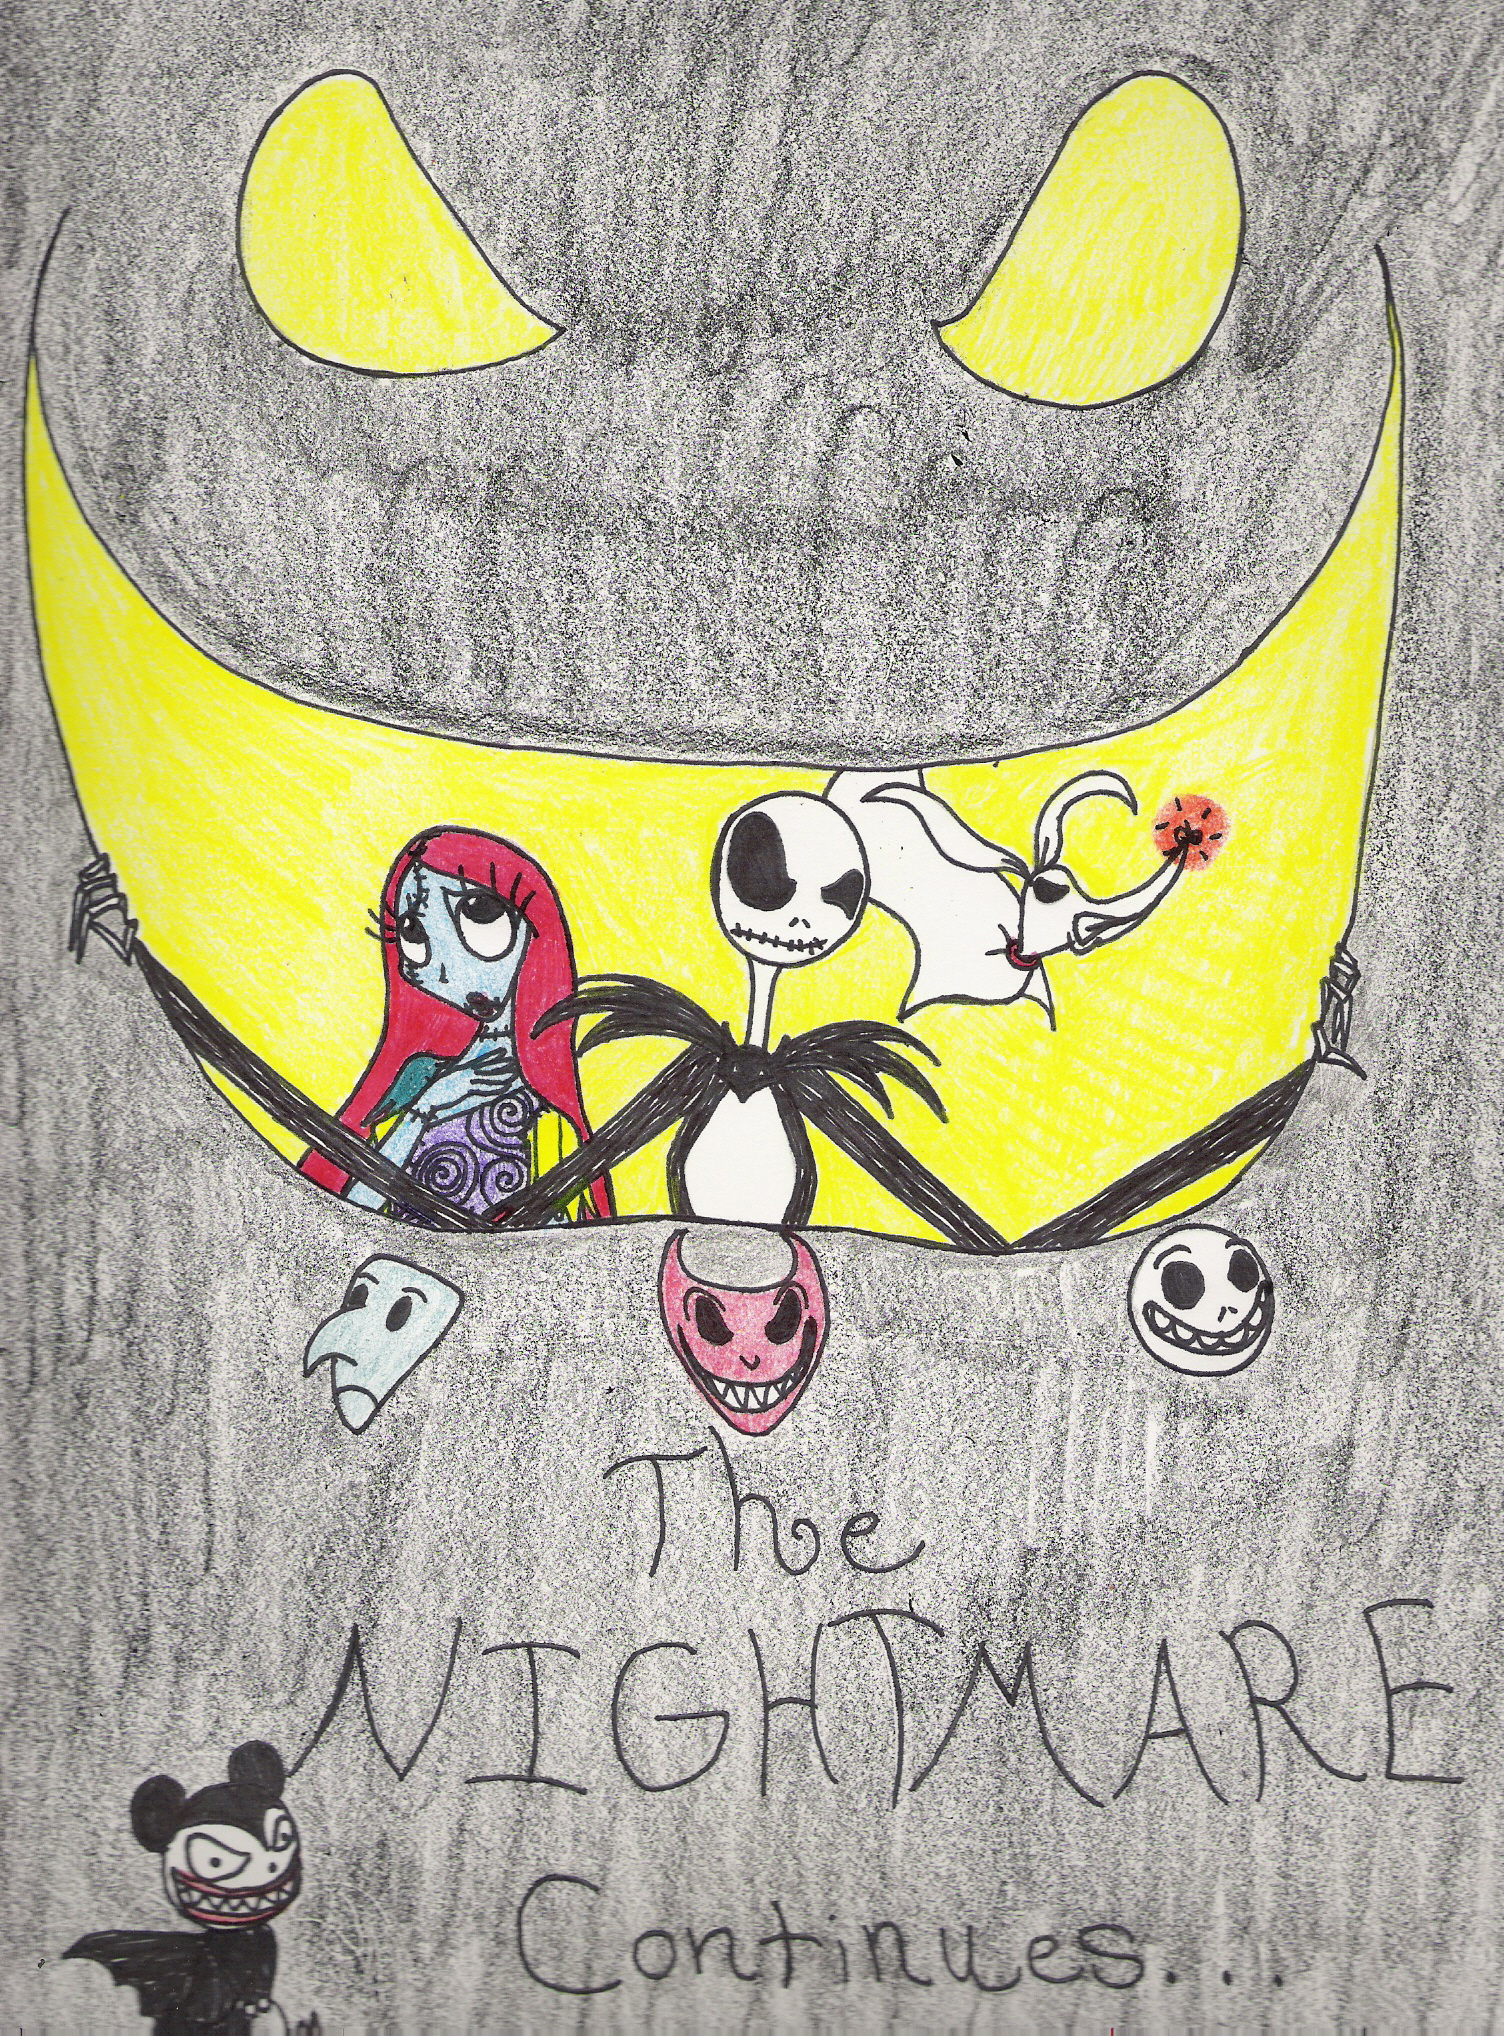 the nightmare before christmas 2 oogies revenge - A Nightmare Before Christmas 2